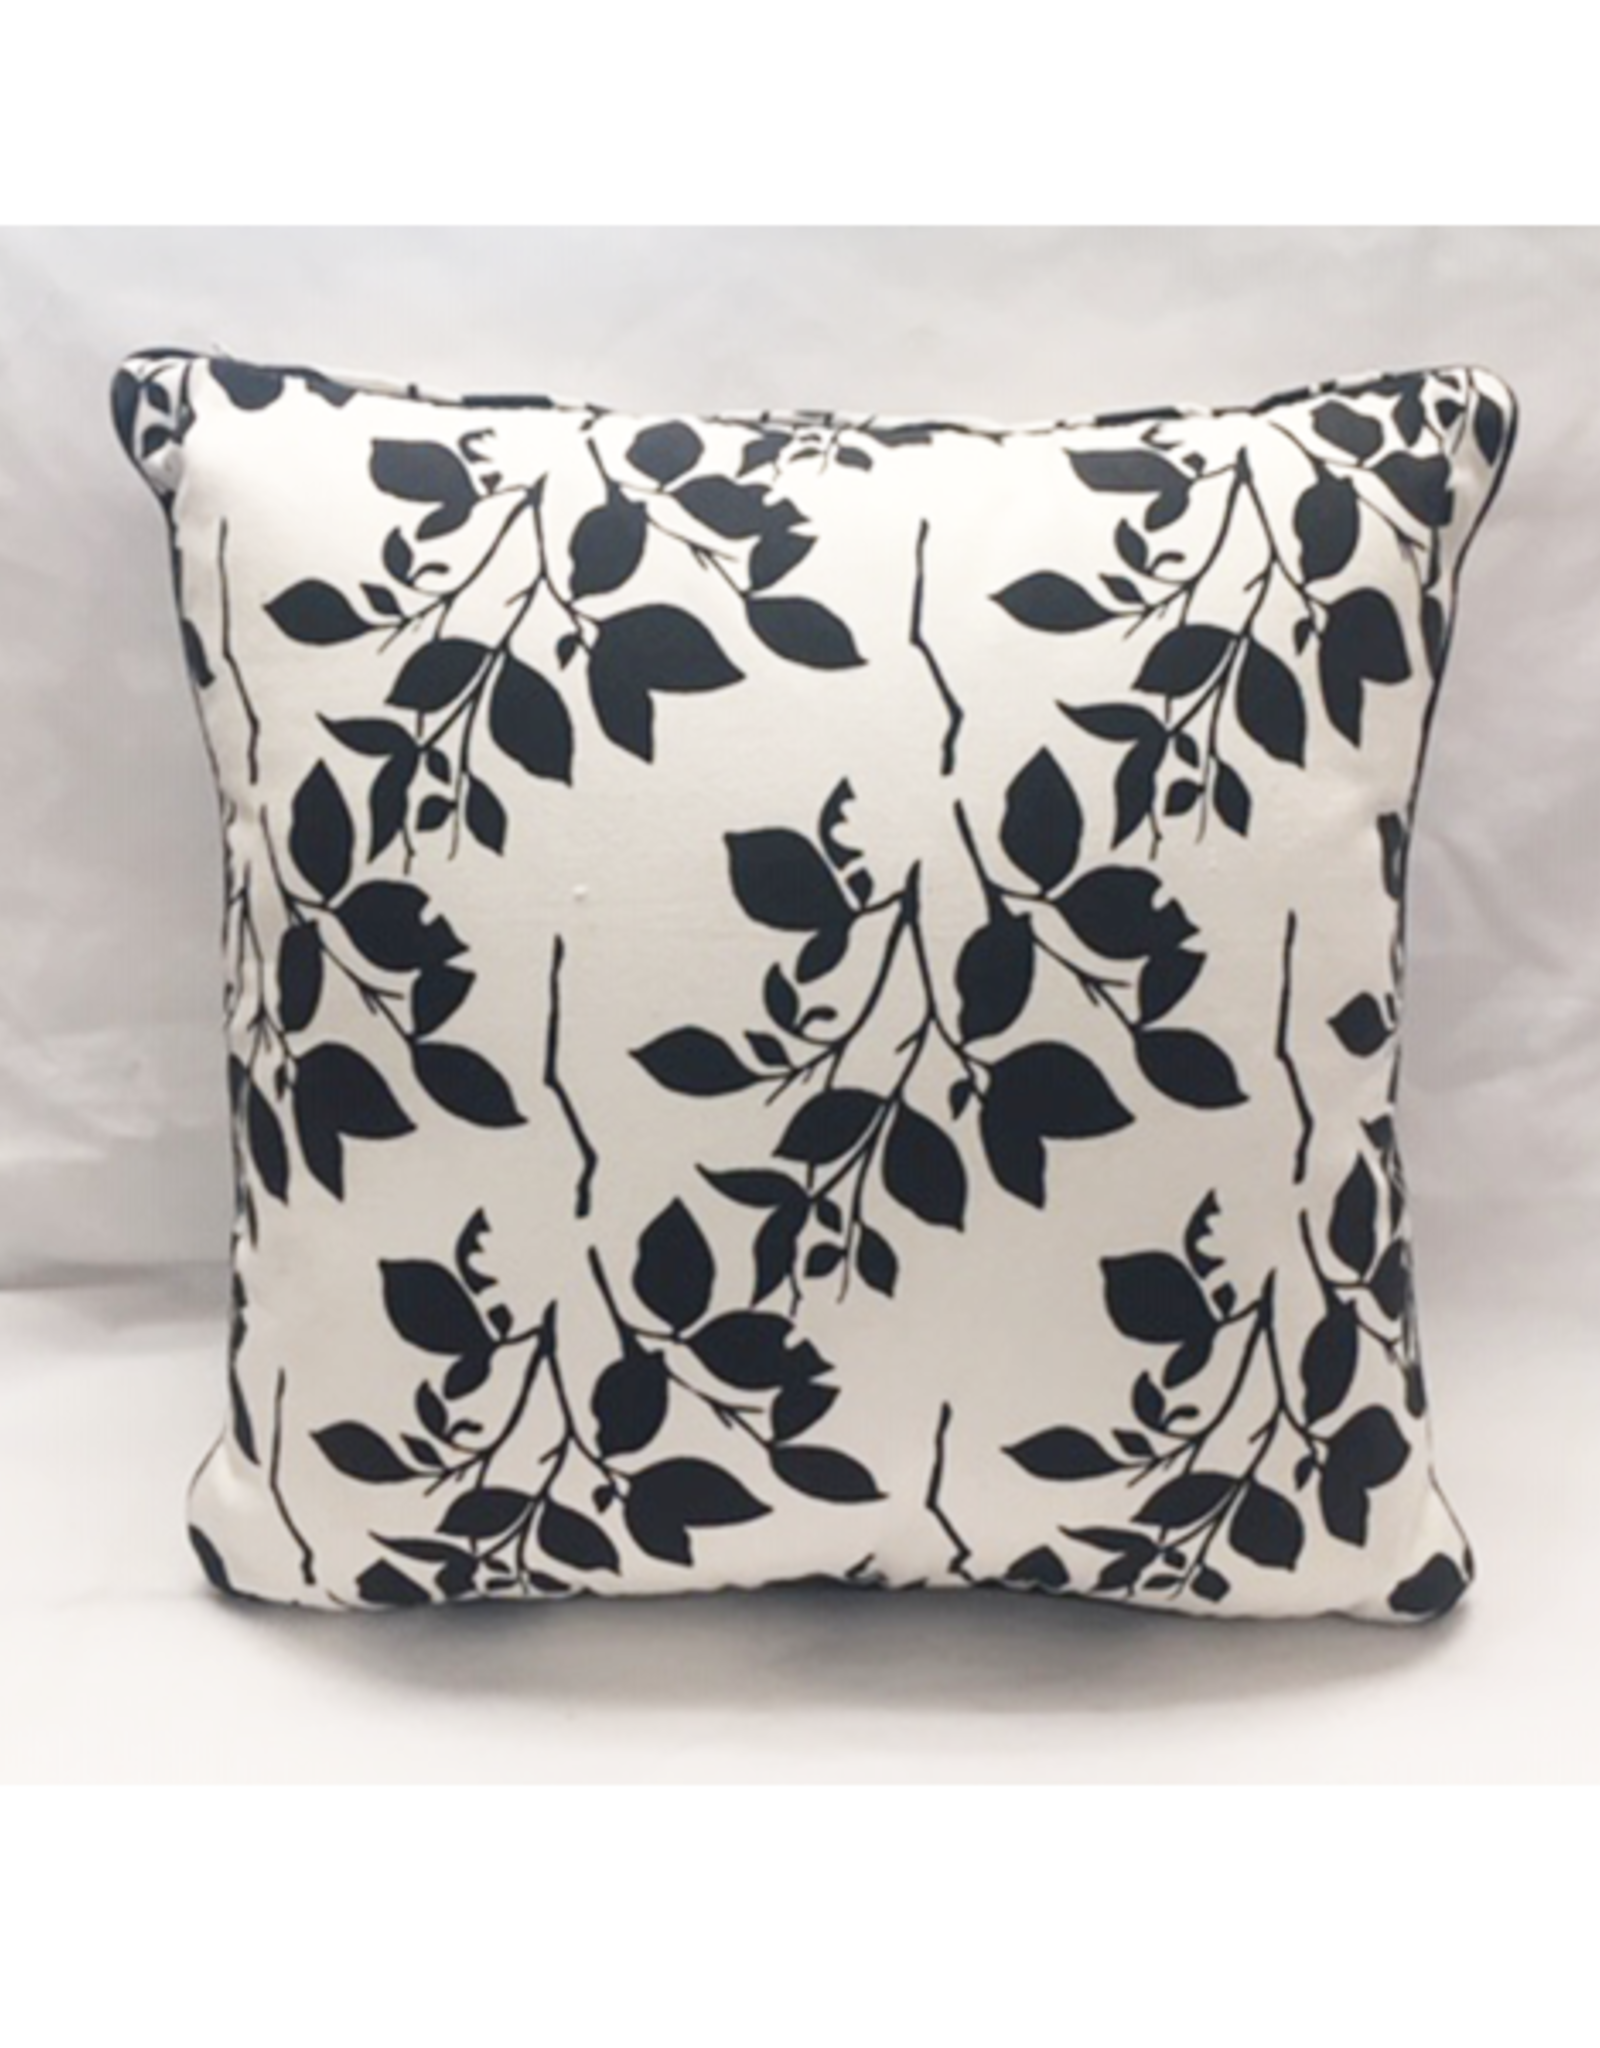 Craft Studio Black and White Floral Cushion Cover 40x40cm